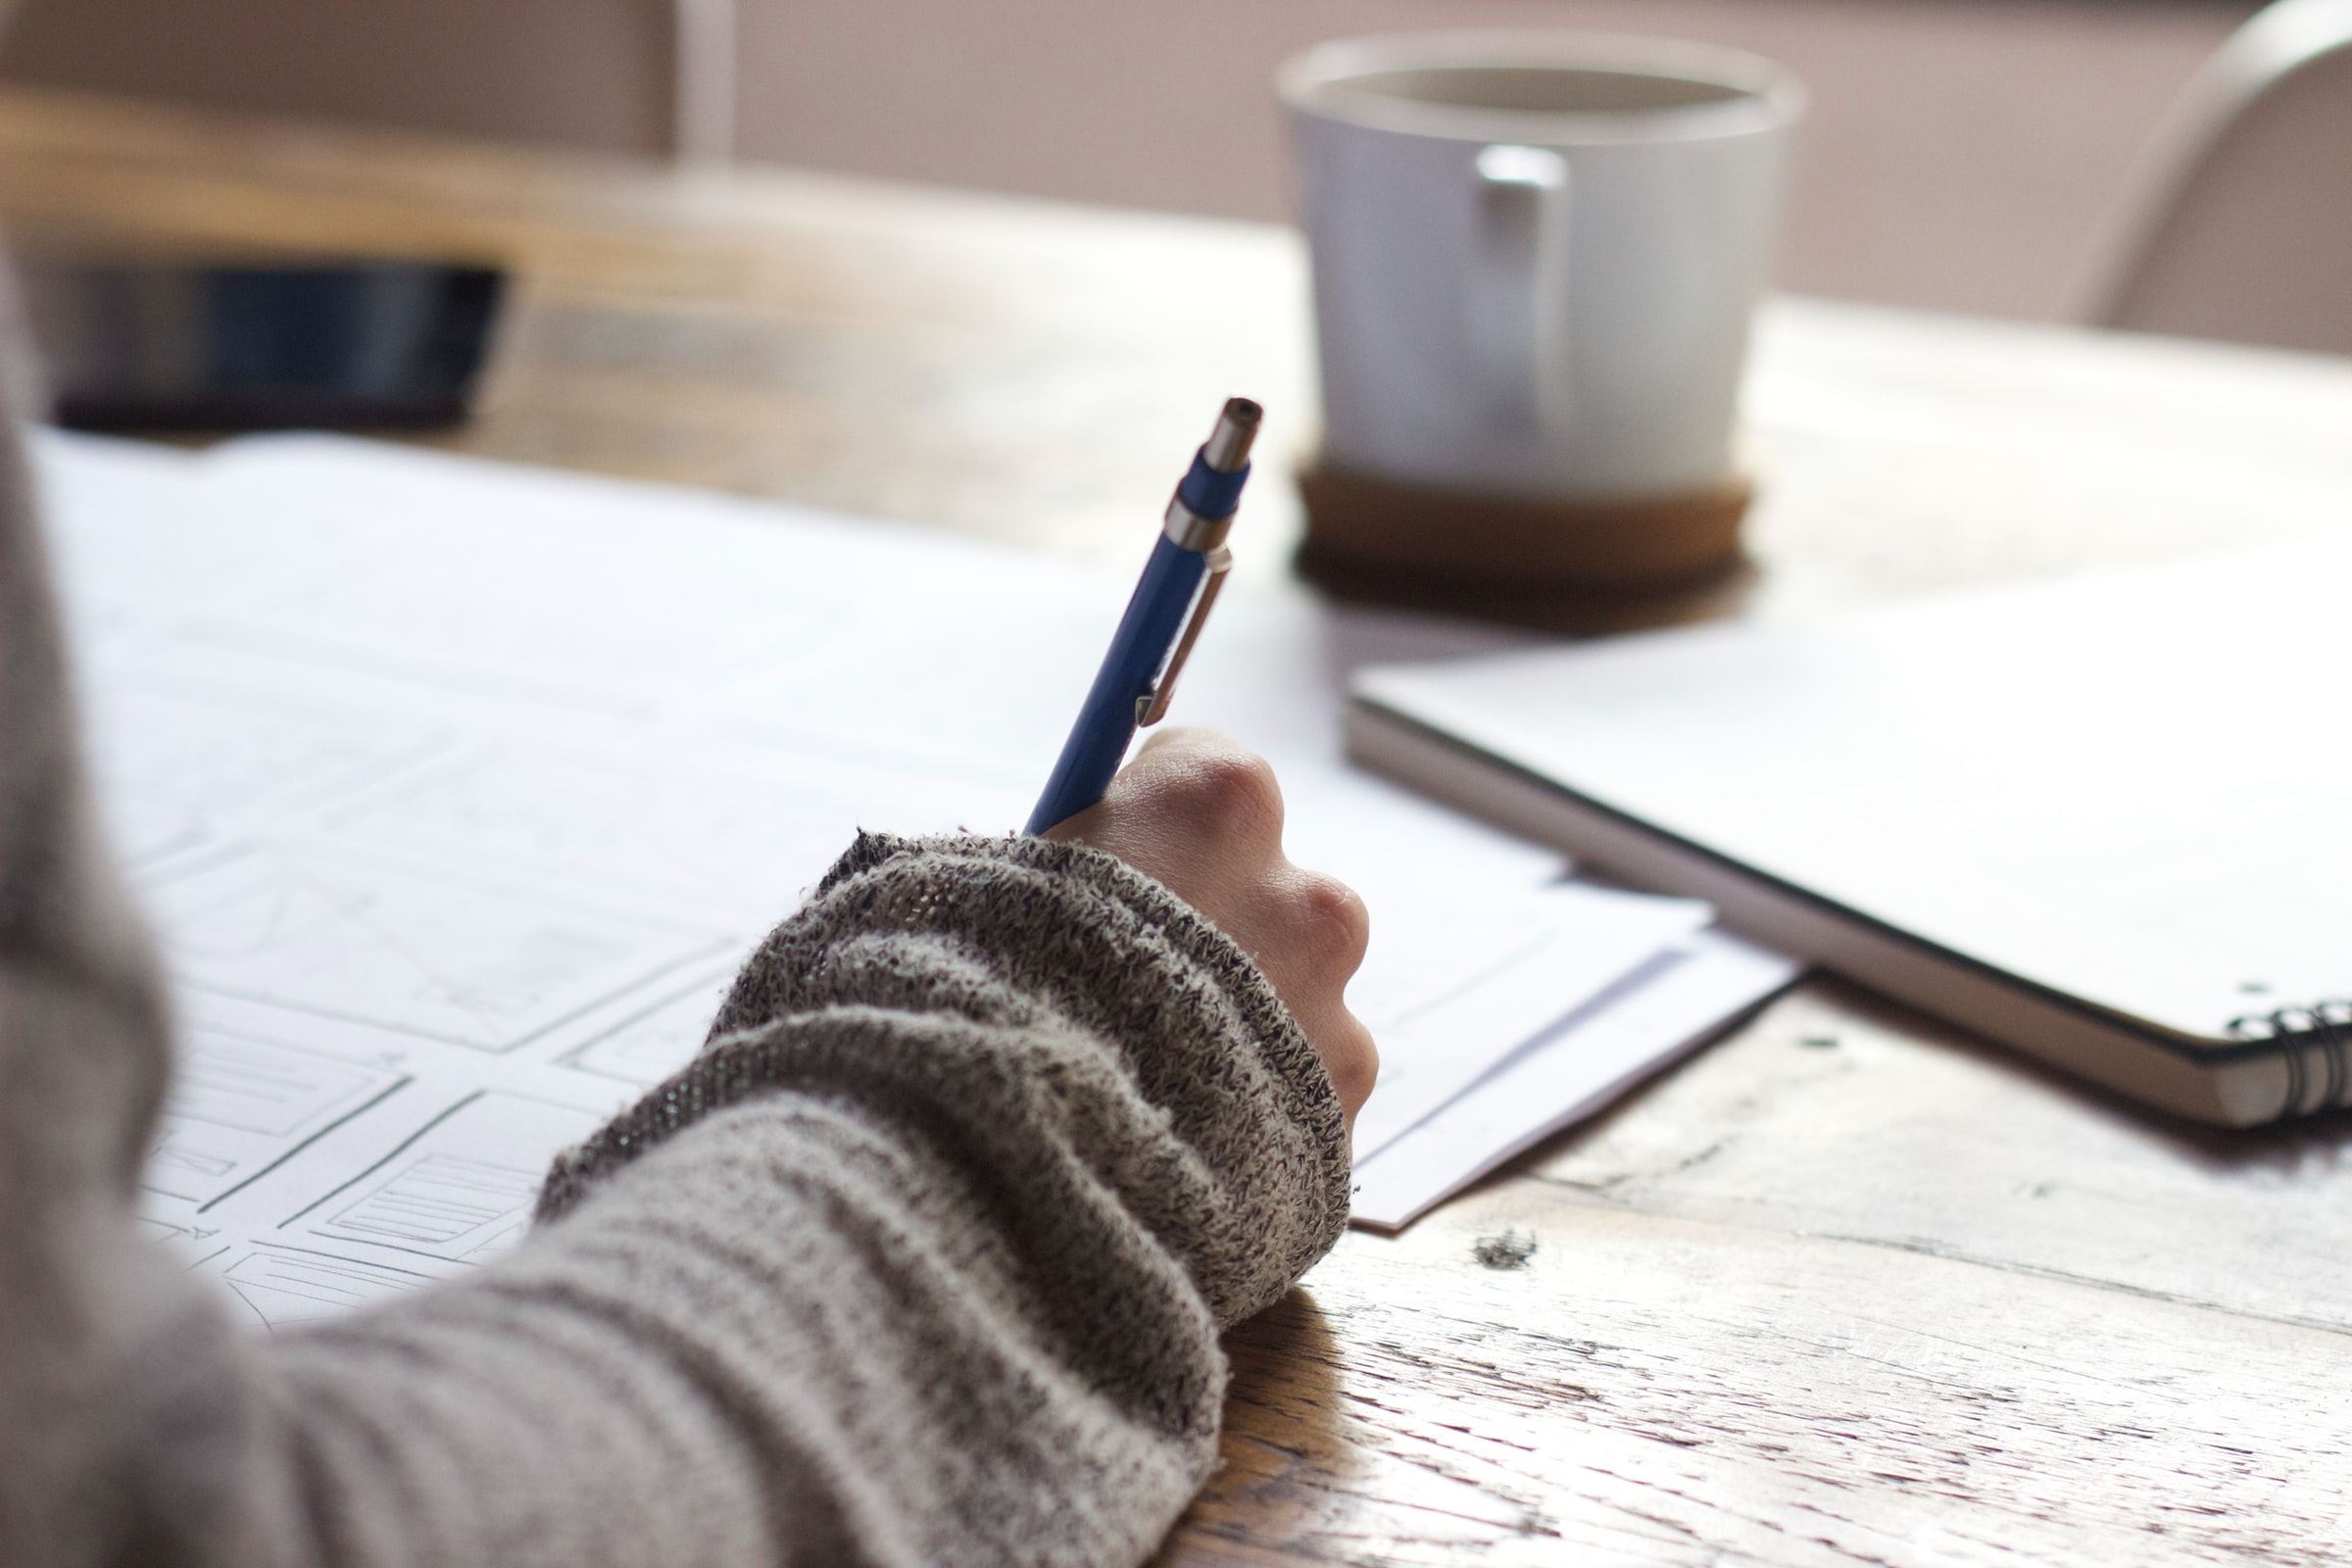 How to write a Descriptive Essay in 10 steps: An Easy Guide for Beginners